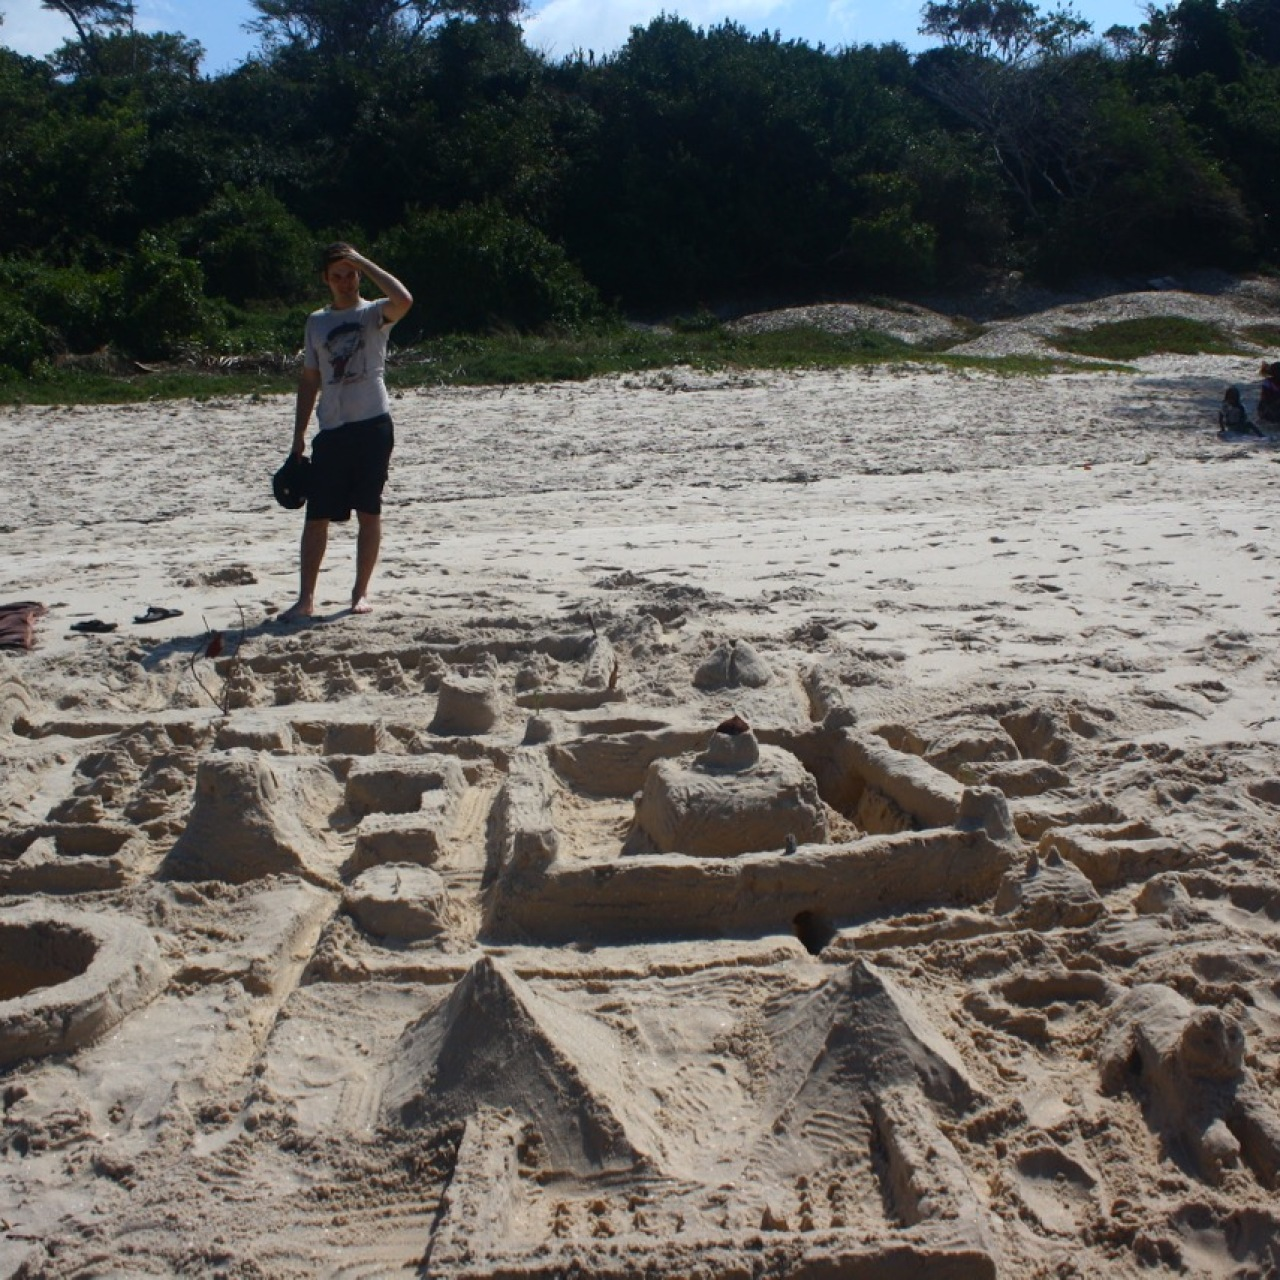 A man looks at a large intricate sandcastle